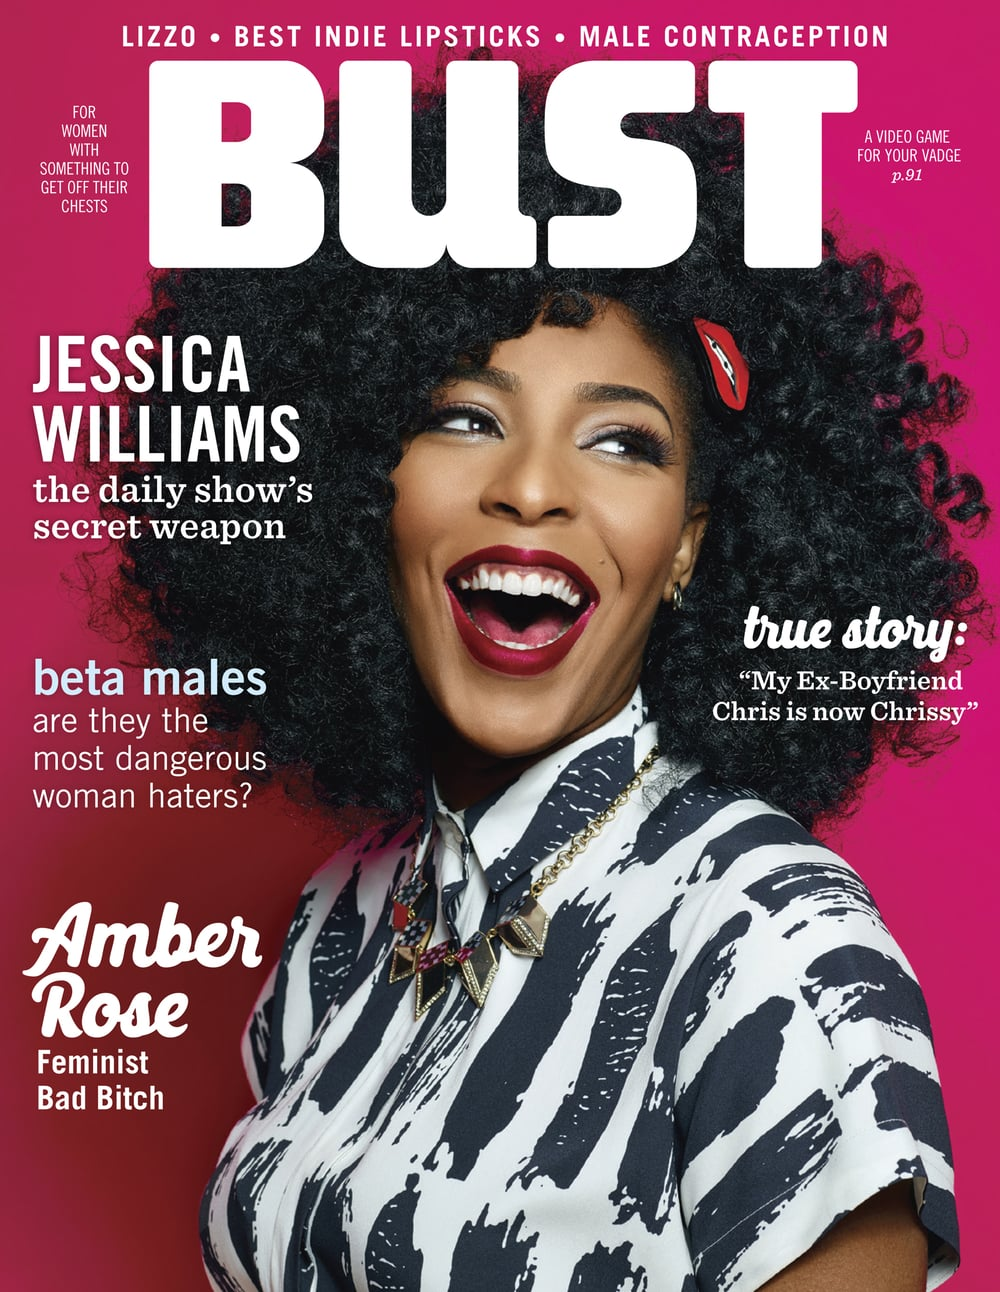 151112_Jessica_Williams_cover.jpg